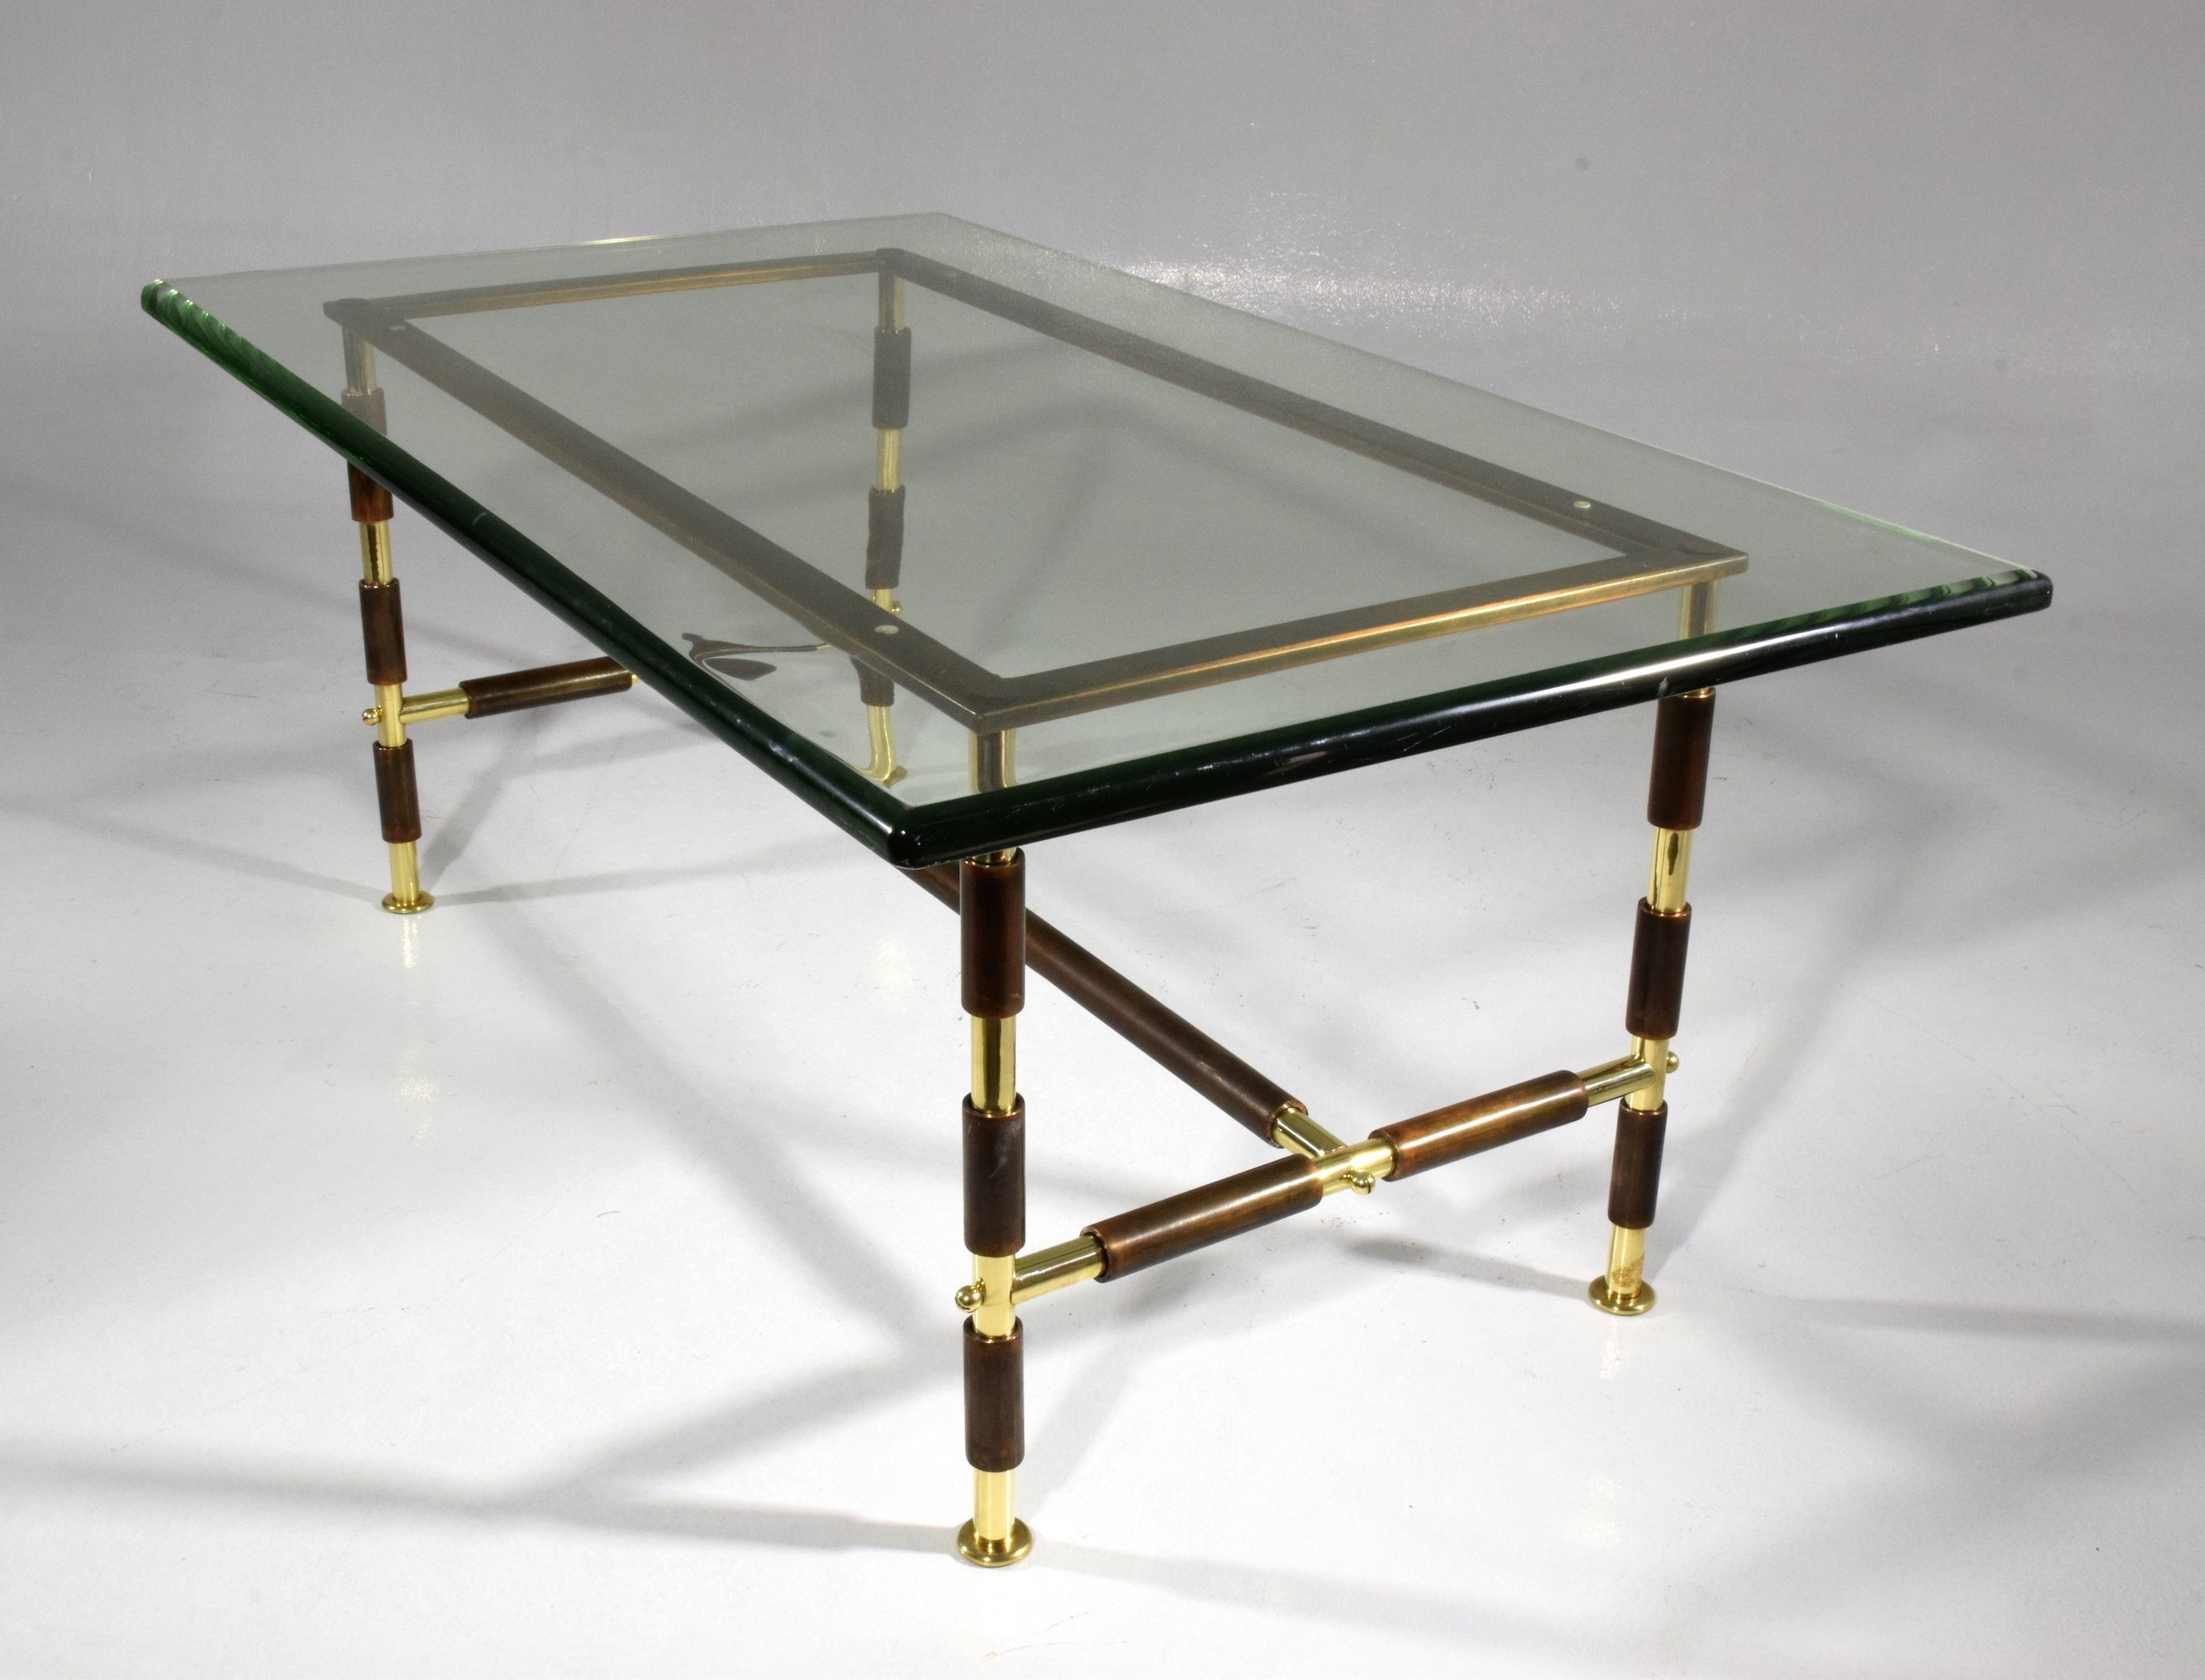 dcc9947cbcd Coffee Table by Max Ingrand for Fontana Arte